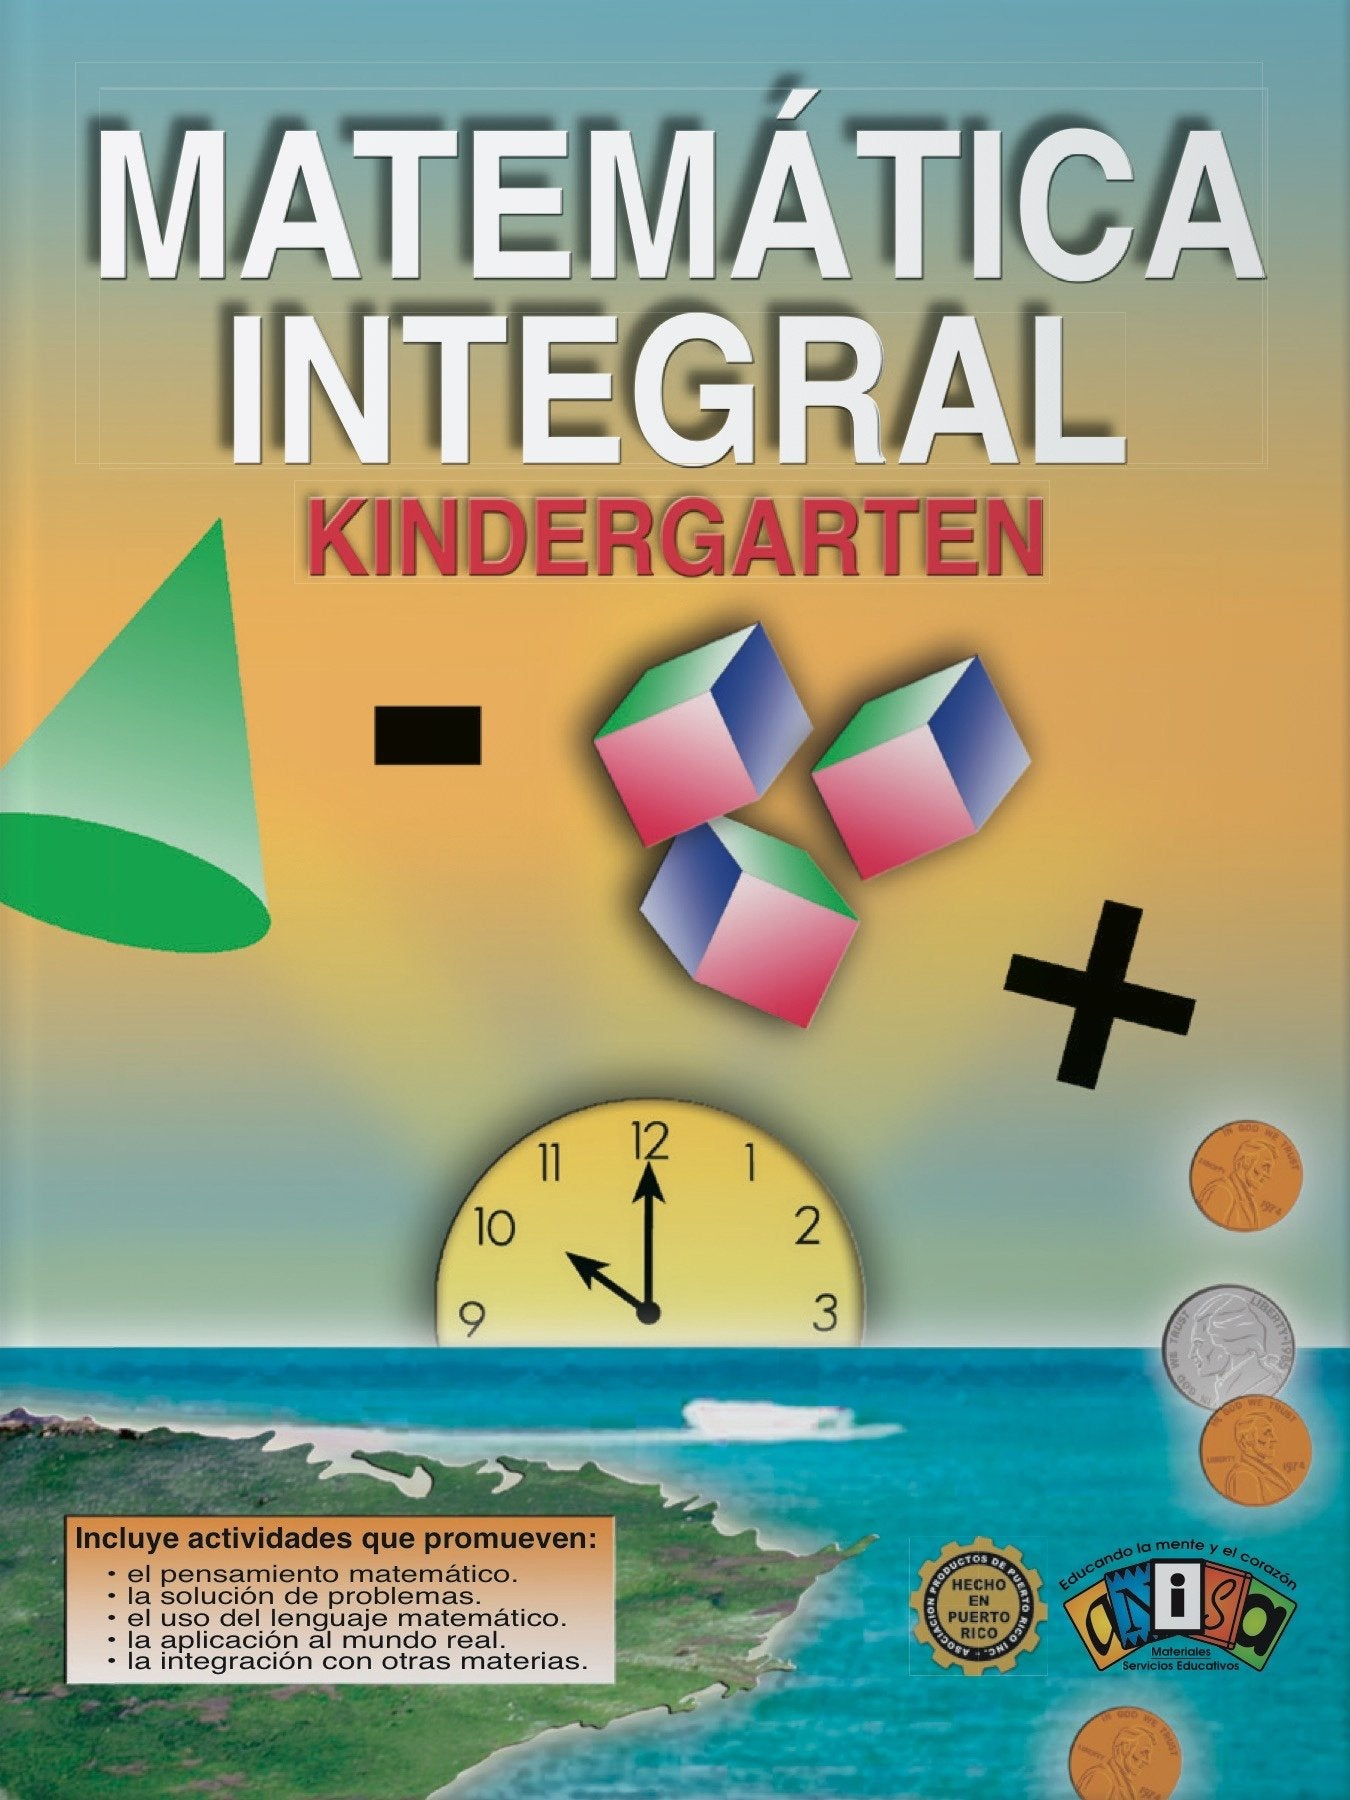 AM-L001 Matemática Integral - Kindergarten